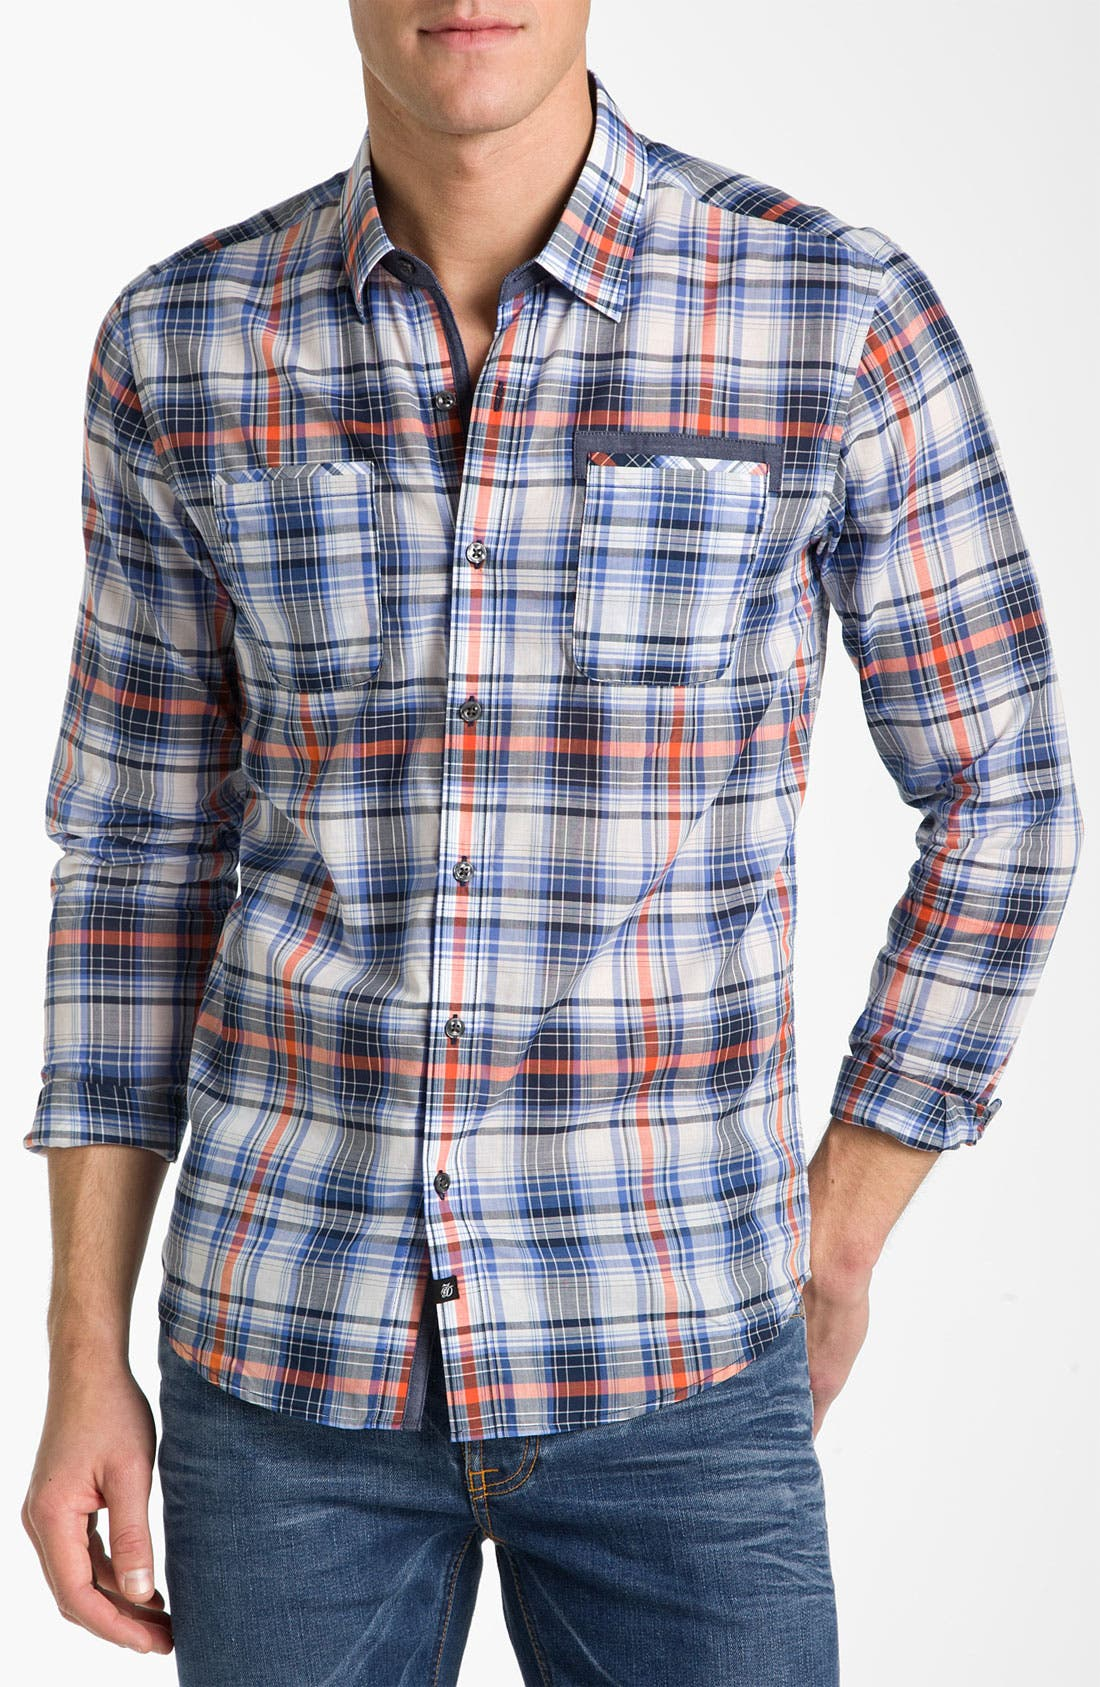 Main Image - 7 Diamonds 'In The Mood' Plaid Woven Shirt